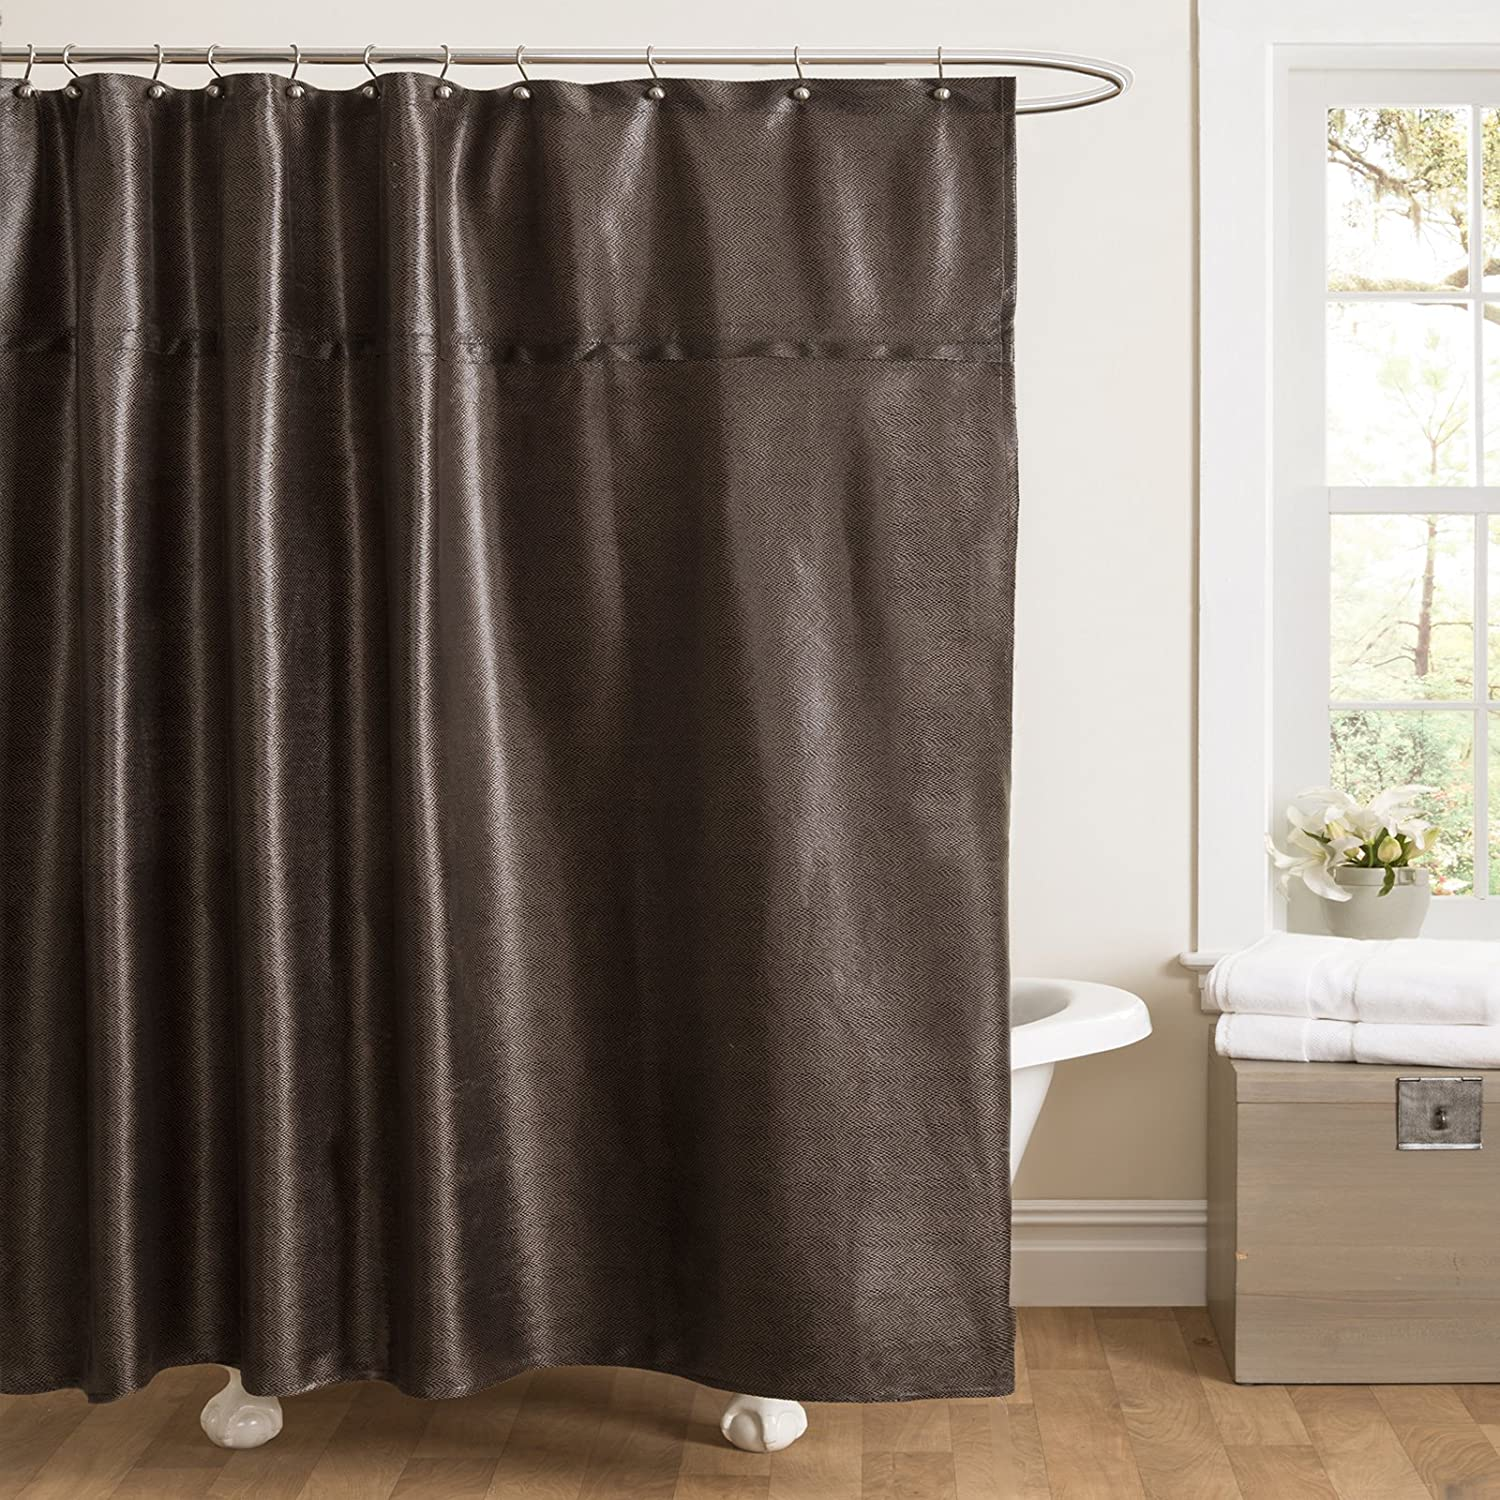 Sinatra silver shower curtain - Amazon Com Lush Decor Rylee Shower Curtain 72 By 72 Inch Black Home Kitchen